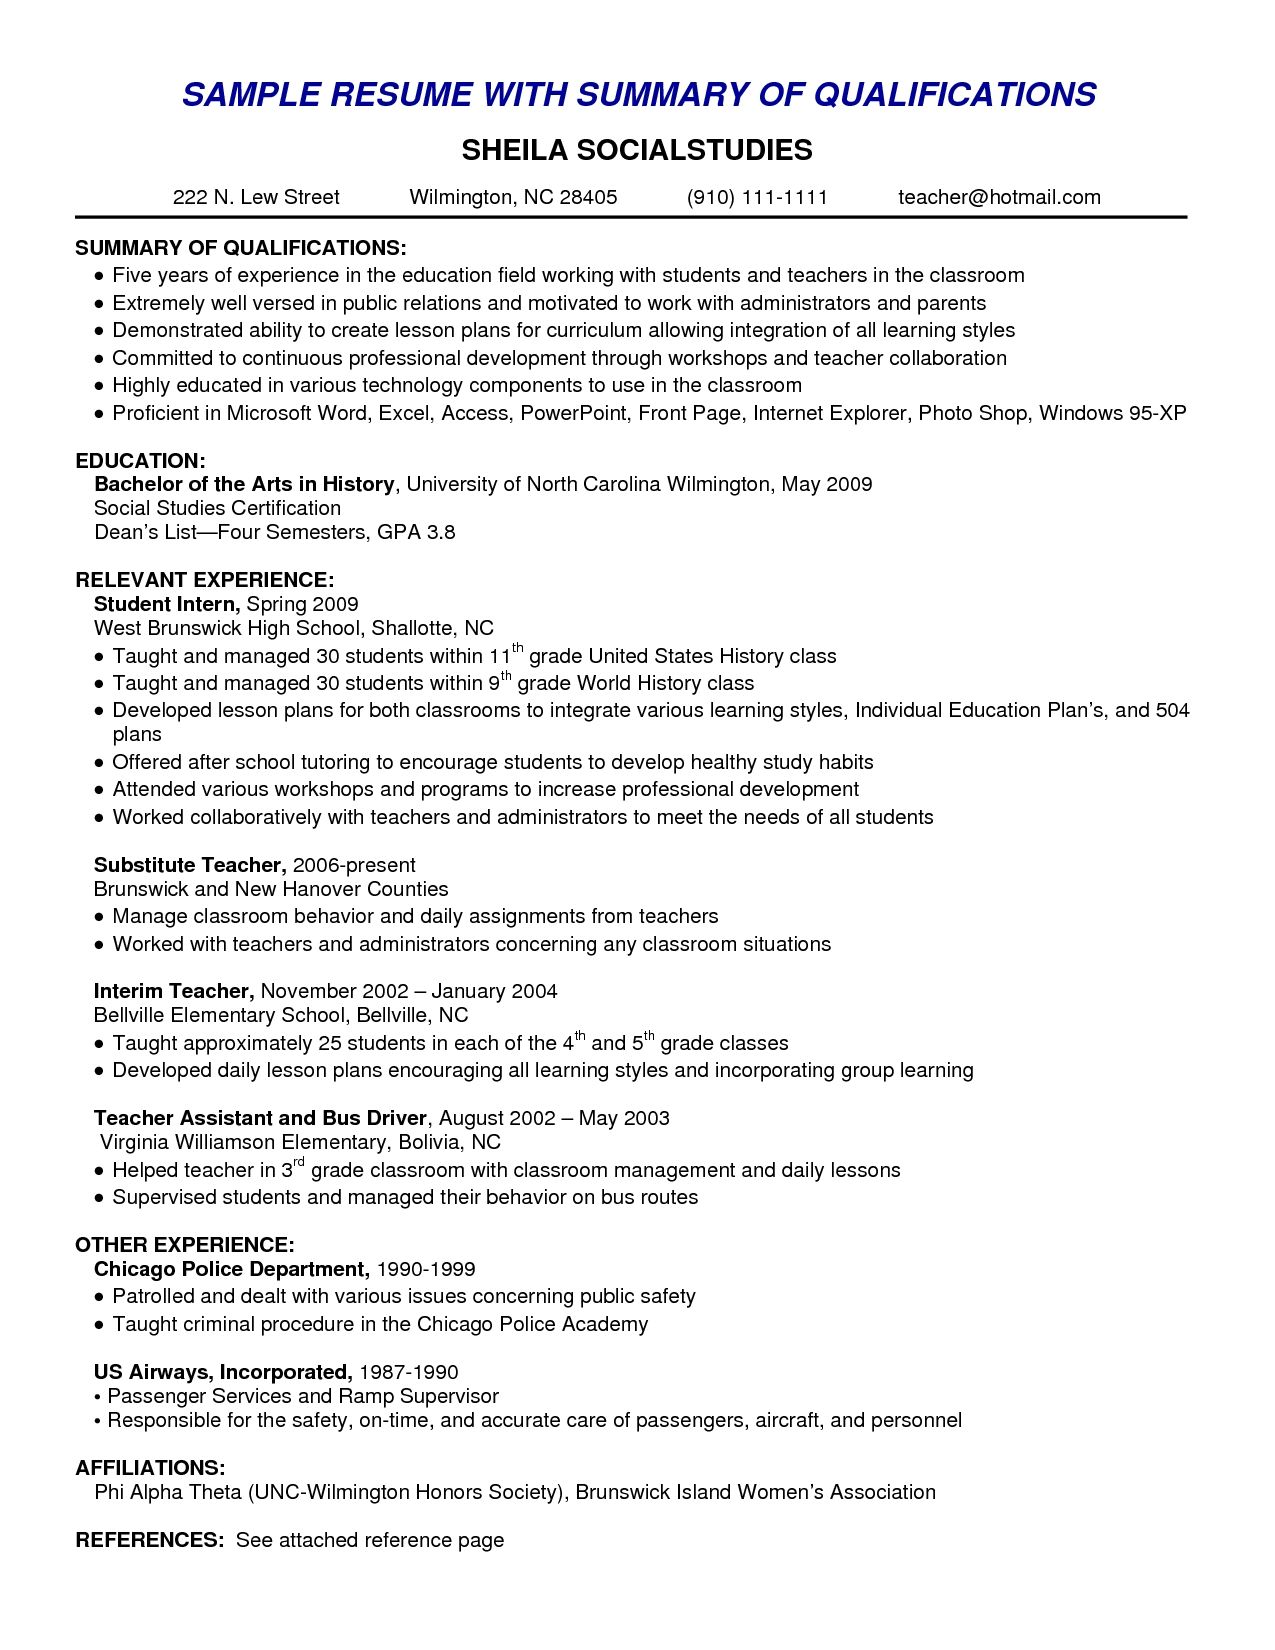 Attractive Resume Skills Summary Examples Example Of Skills Summary For Resume Amusing  Summary Of Skills Intended Summary Of Skills Resume